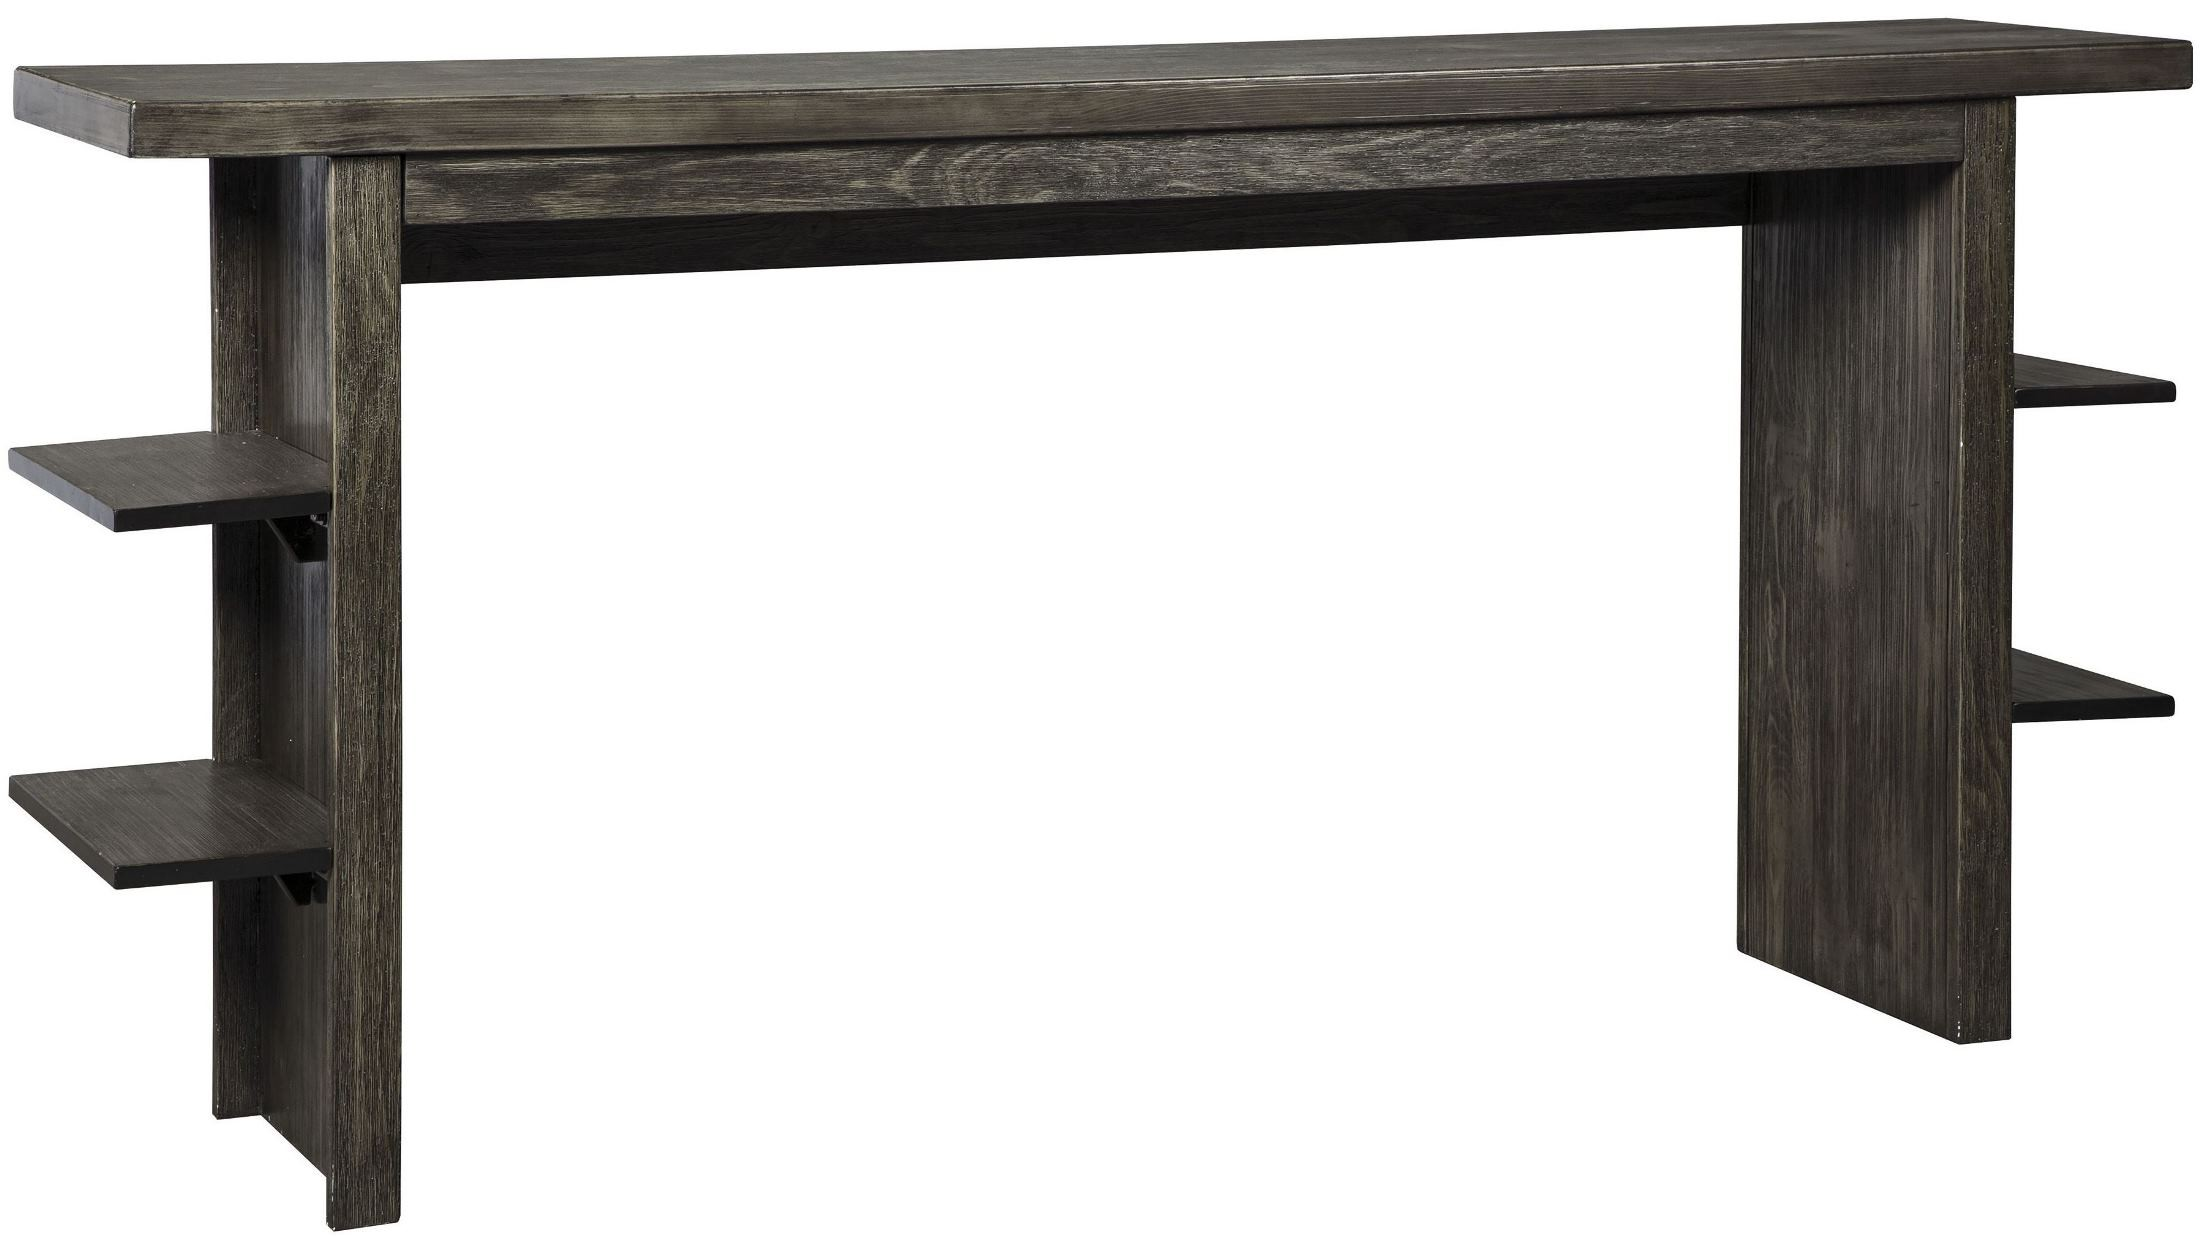 Lamoille Dark Gray Long Counter Height Dining Table D639  : d639 33 sw1 from colemanfurniture.com size 2200 x 1241 jpeg 237kB